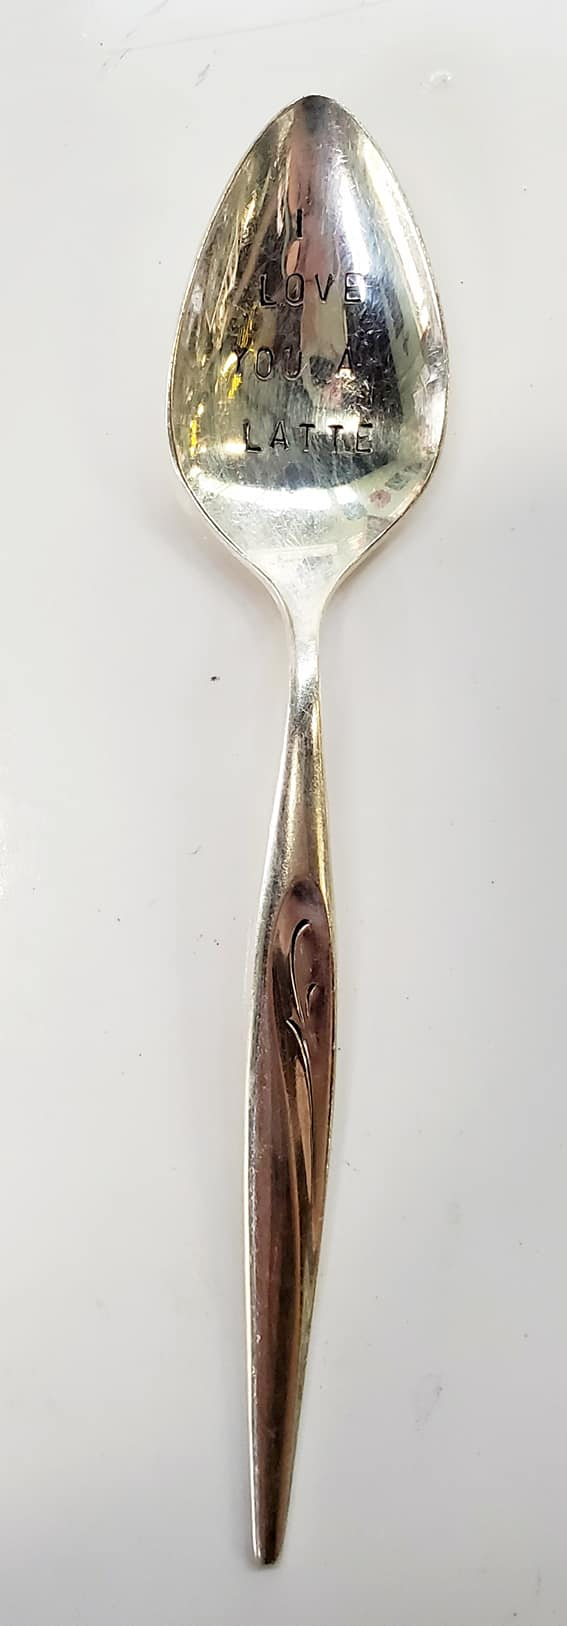 """I Love You a Latte"" Quote Spoon"